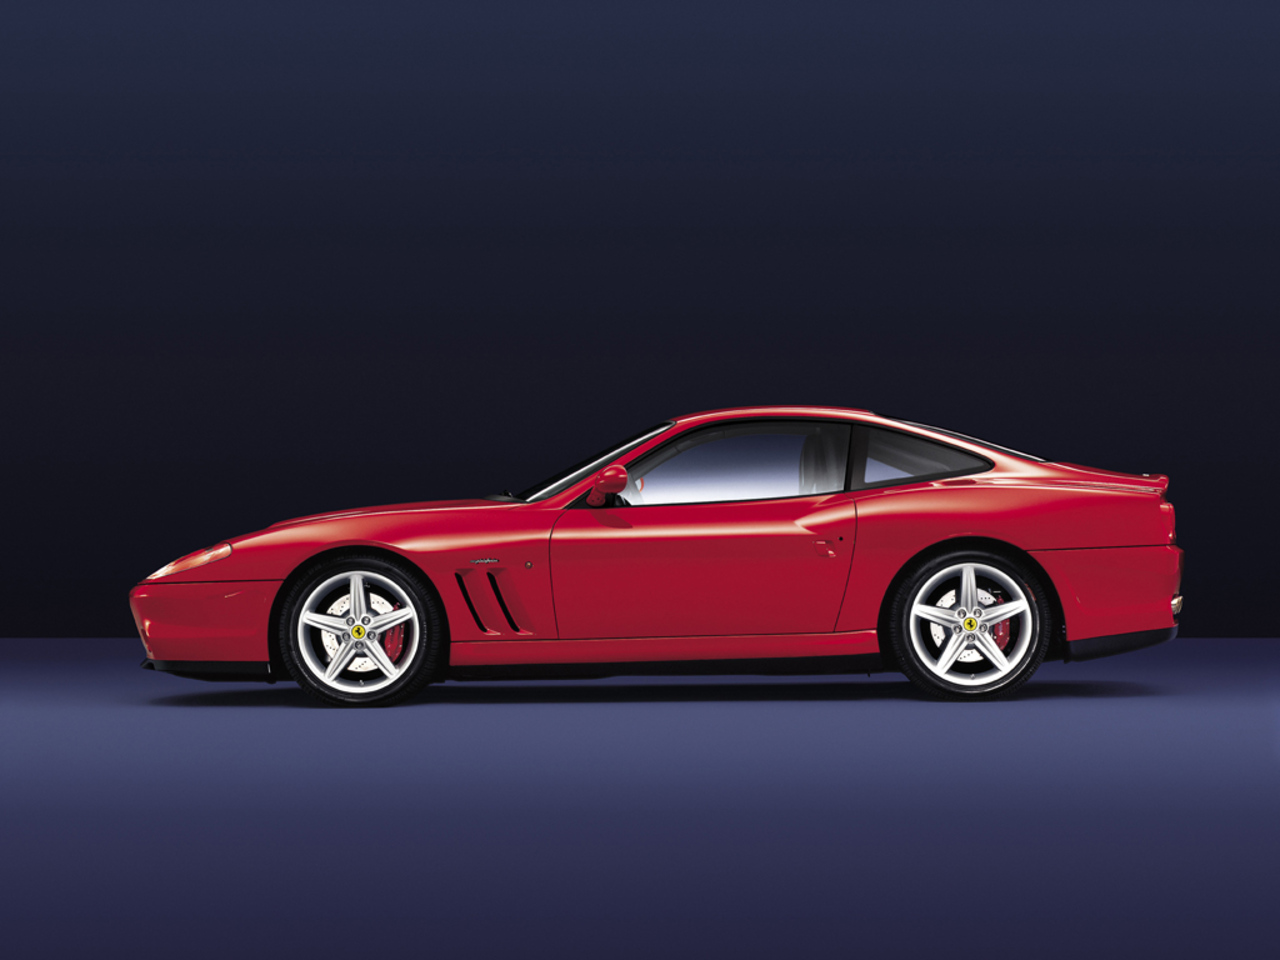 575M Maranello, side view